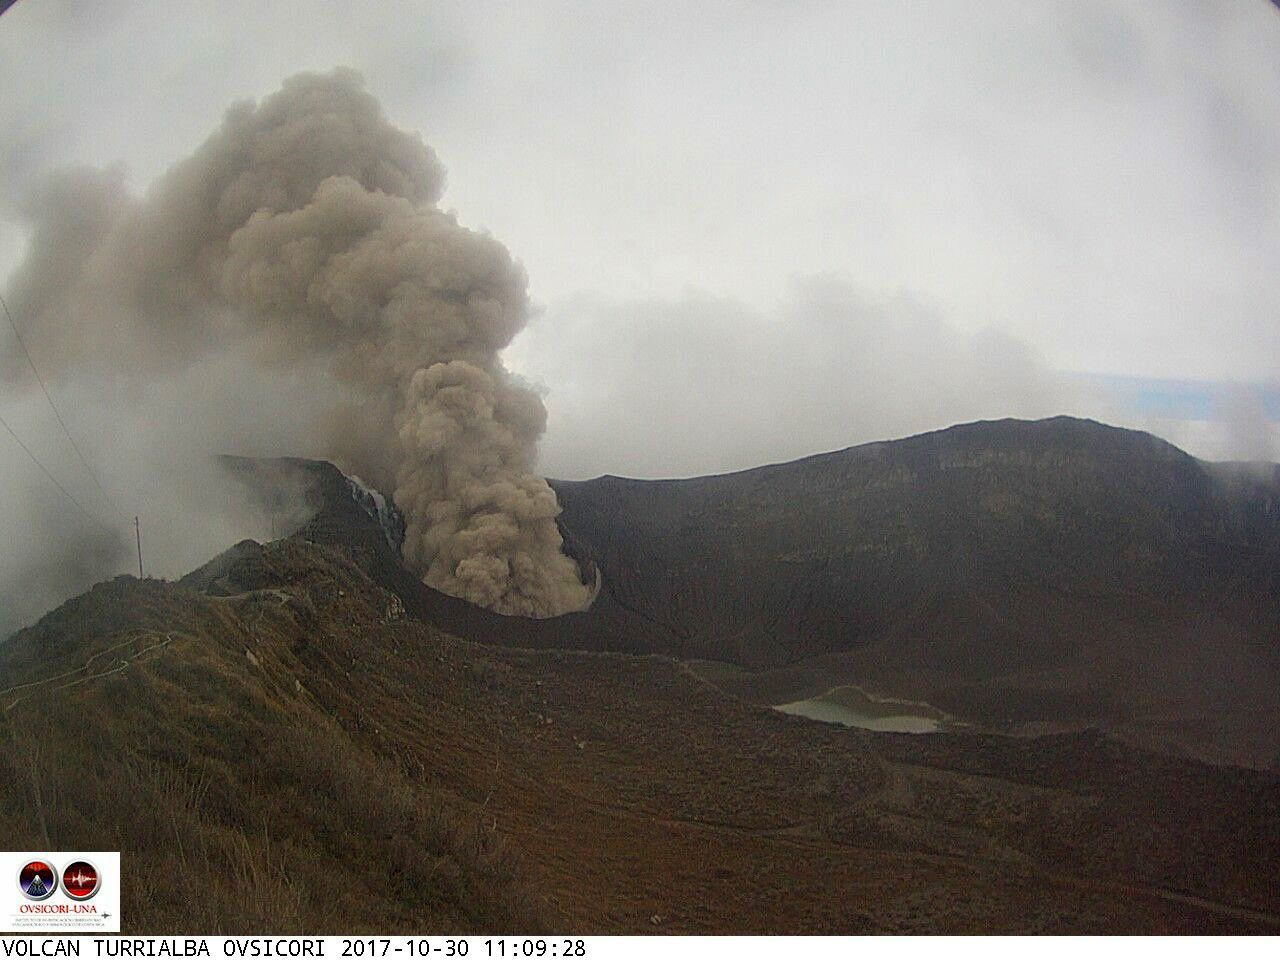 Turrialba - plume seen by the Ovsicori webcam on 30.10.2017 at 11:09